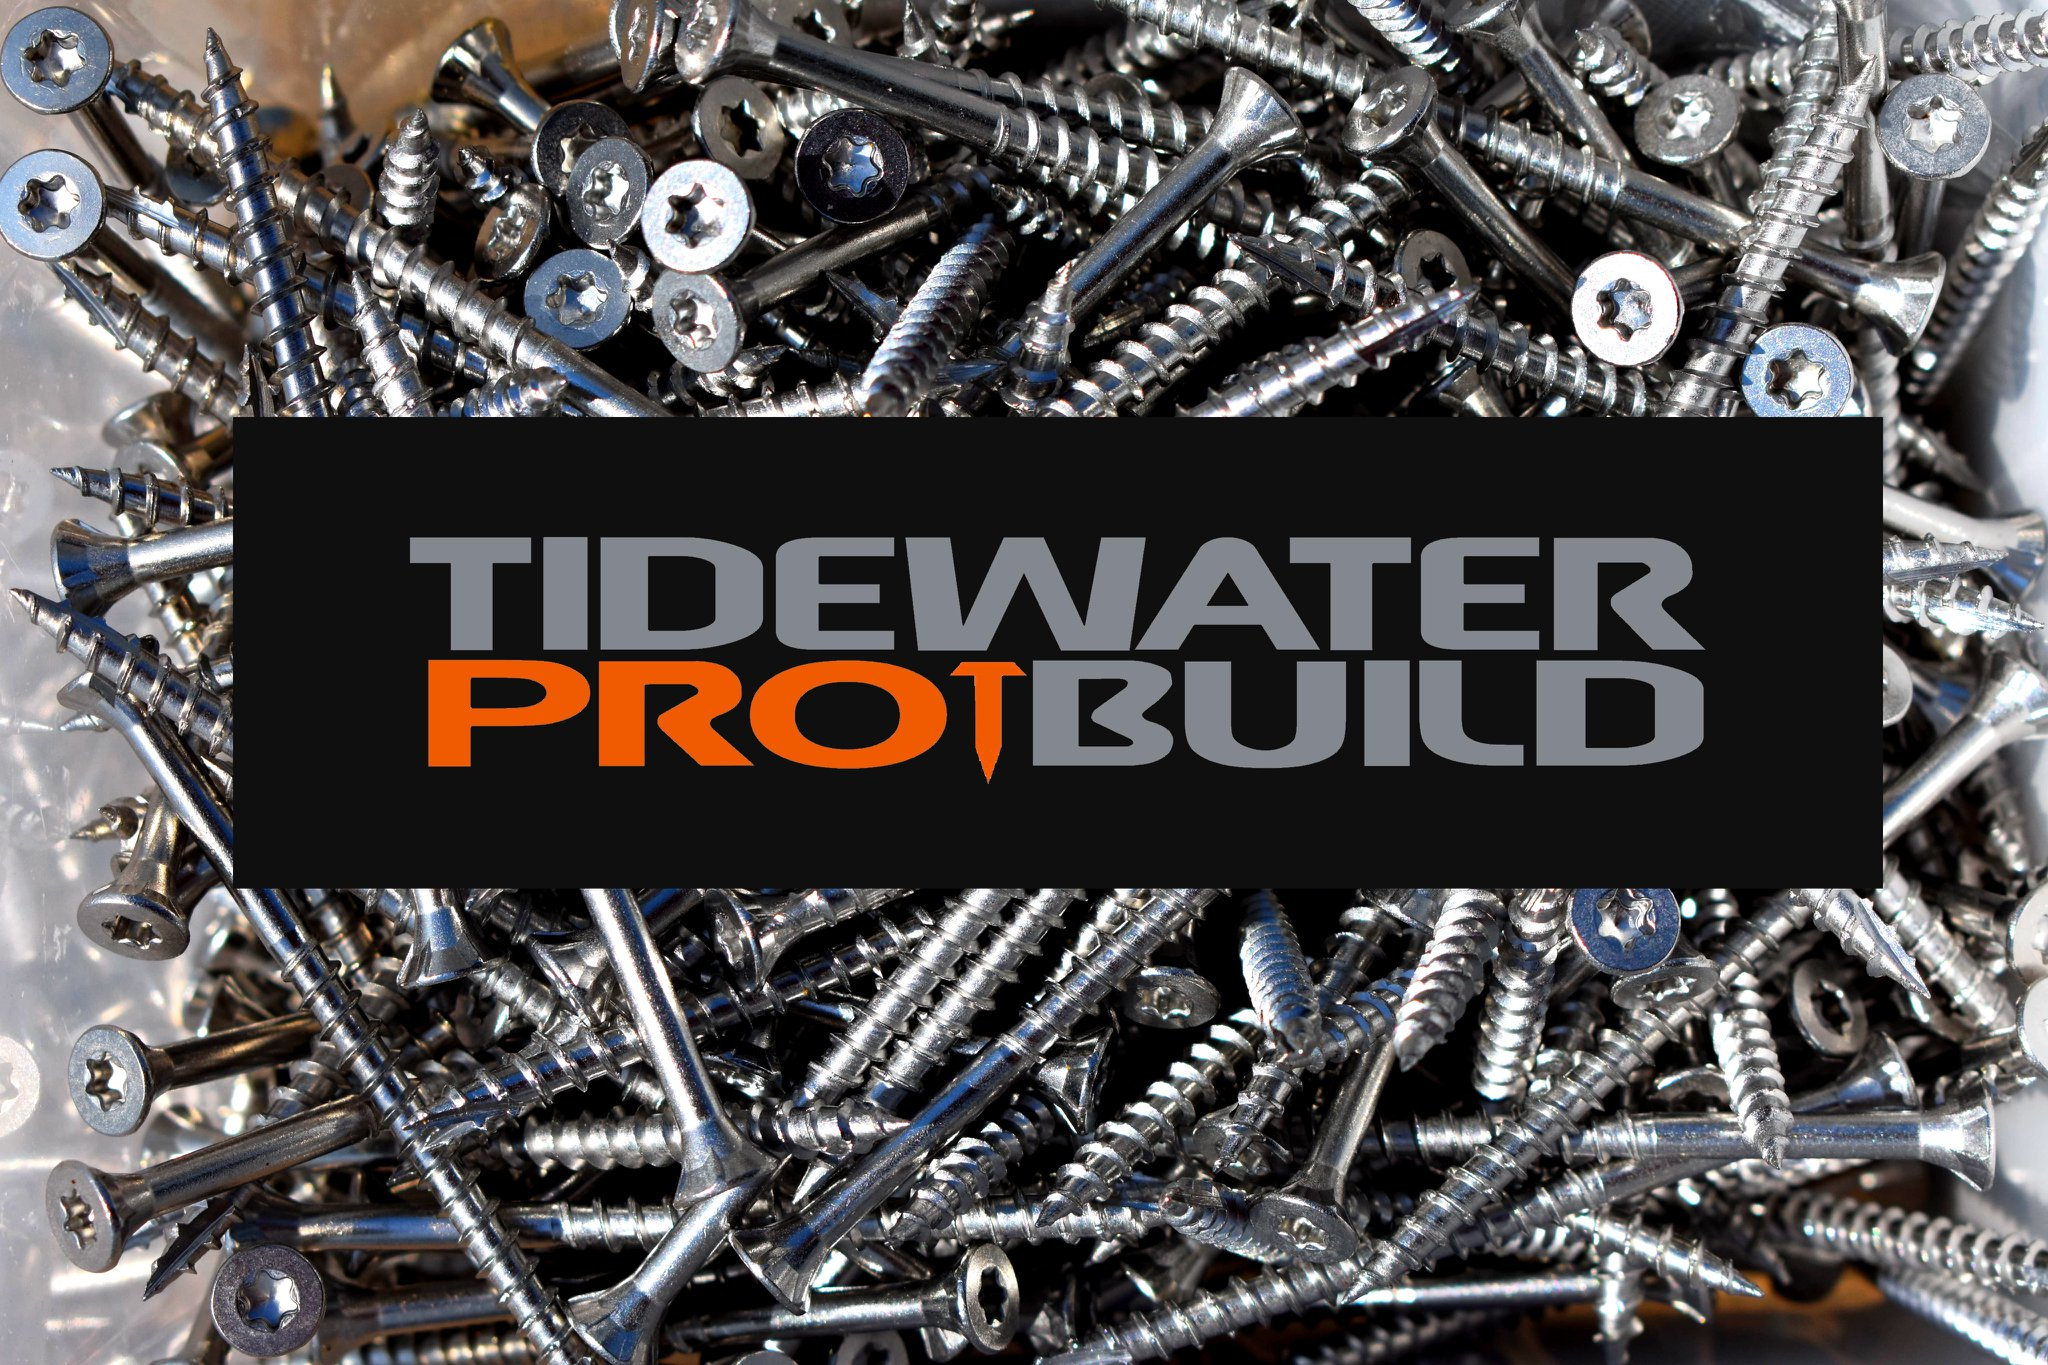 tidewater pro build reviews suffolk